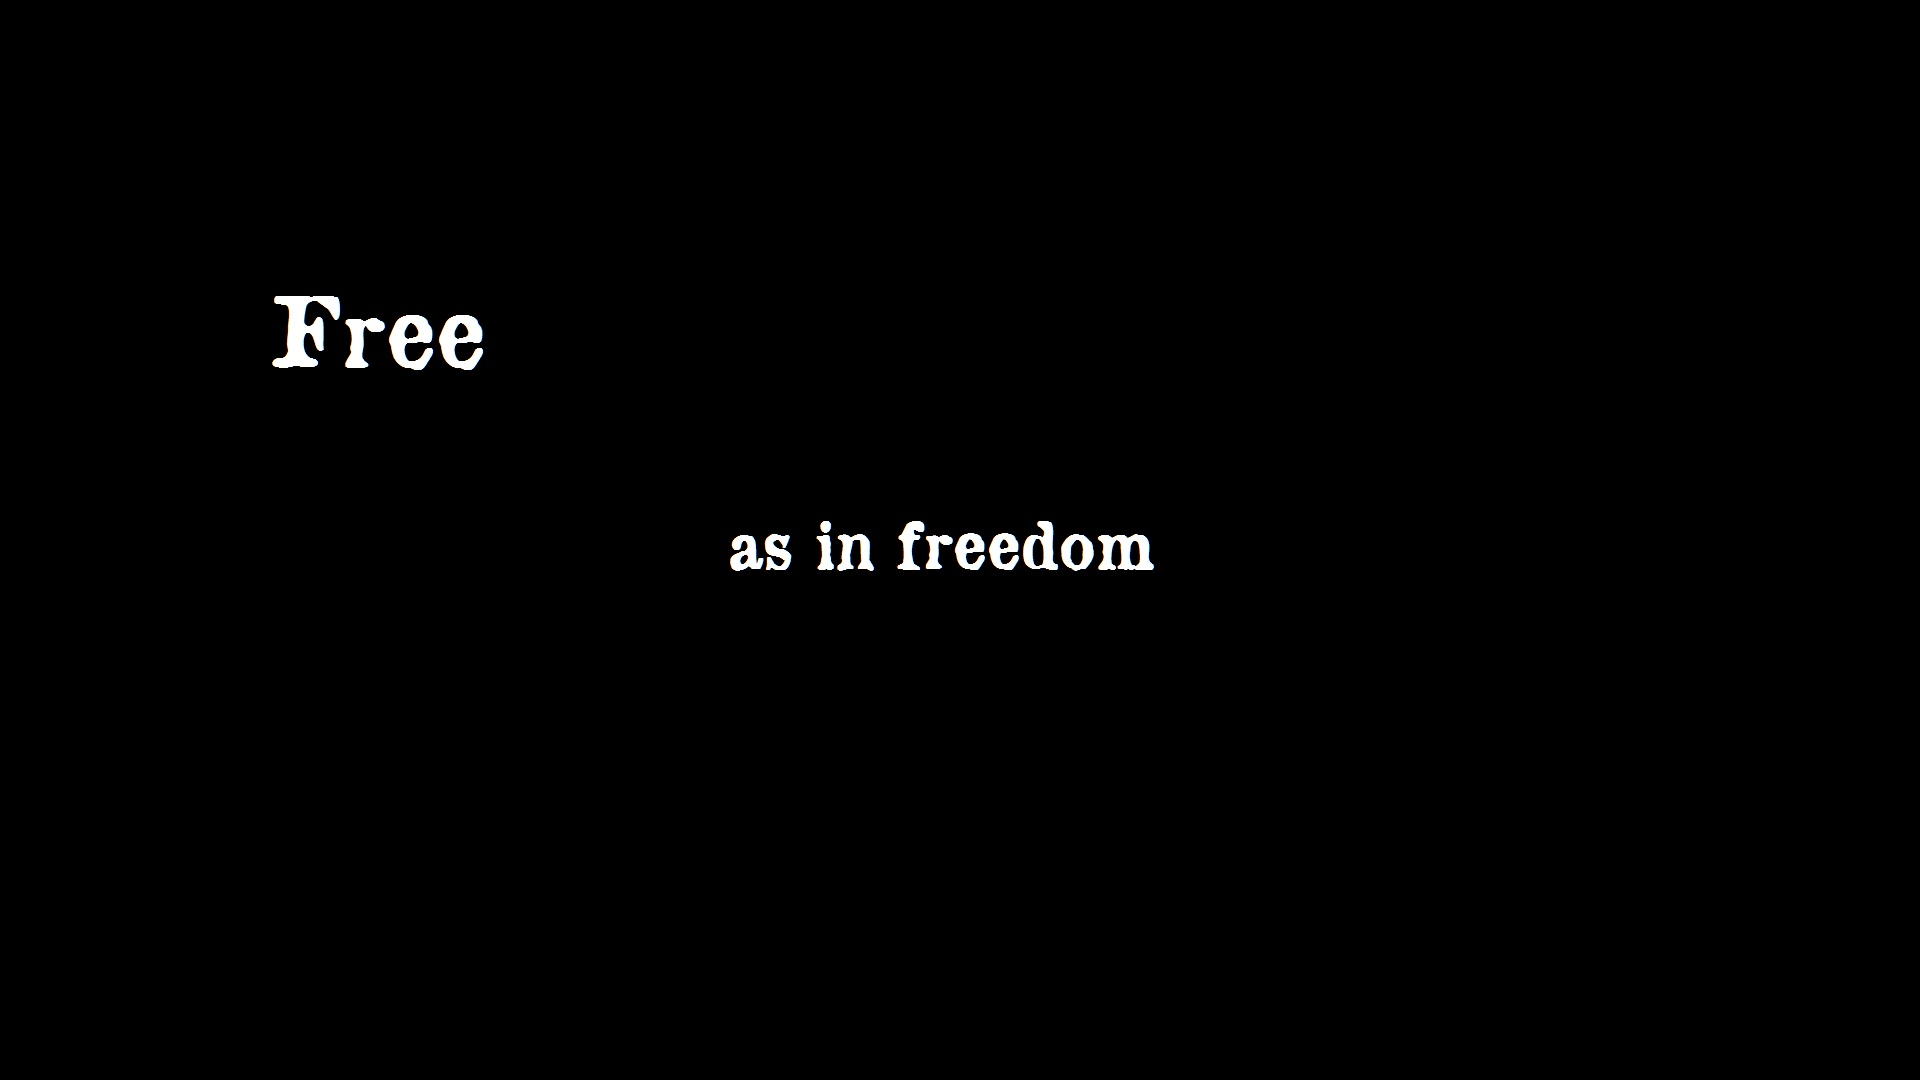 "Frase: free as in freedom. Significado ""Livre como na liberdade"""